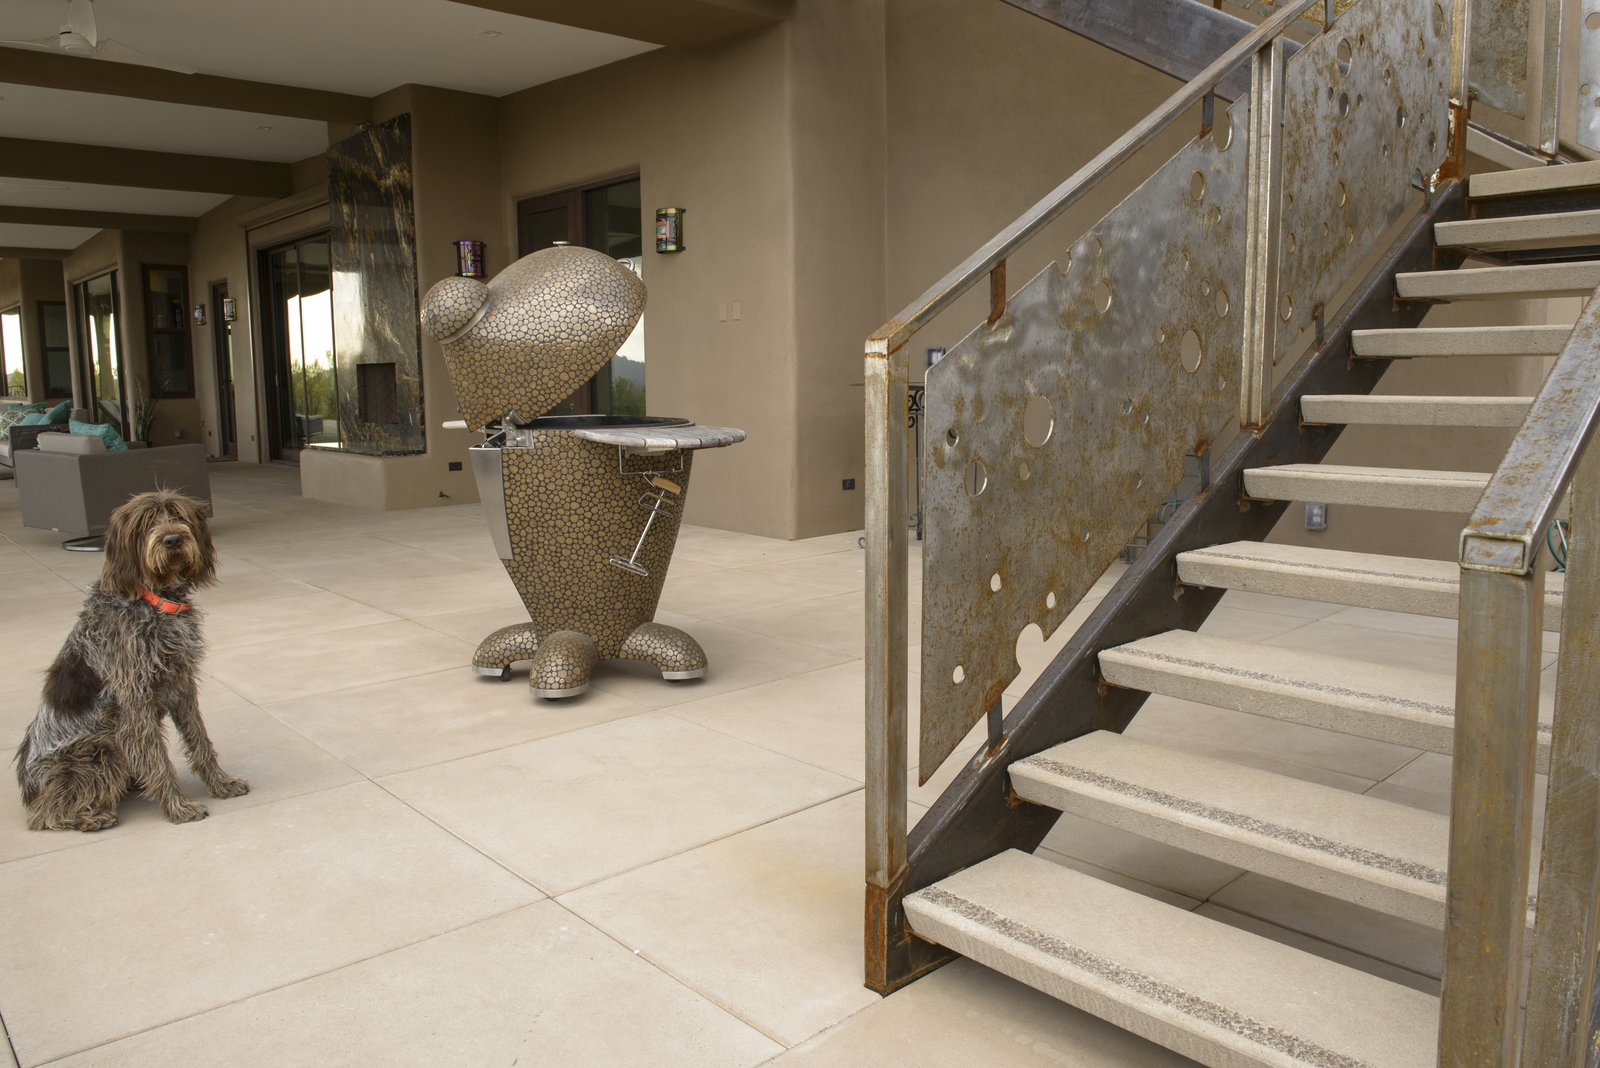 Offering 12 standard colors and a wide assortment of finishes across its product lines, Stepstone allows customers to employ a seamless material palette, as seen in the CalArc Pavers and open riser Steptreads pictured in the home above. Stepstone also offers customizations made in collaboration with architectural and landscape design communities.  Photo 4 of 7 in Setting Creative Solutions in Stone